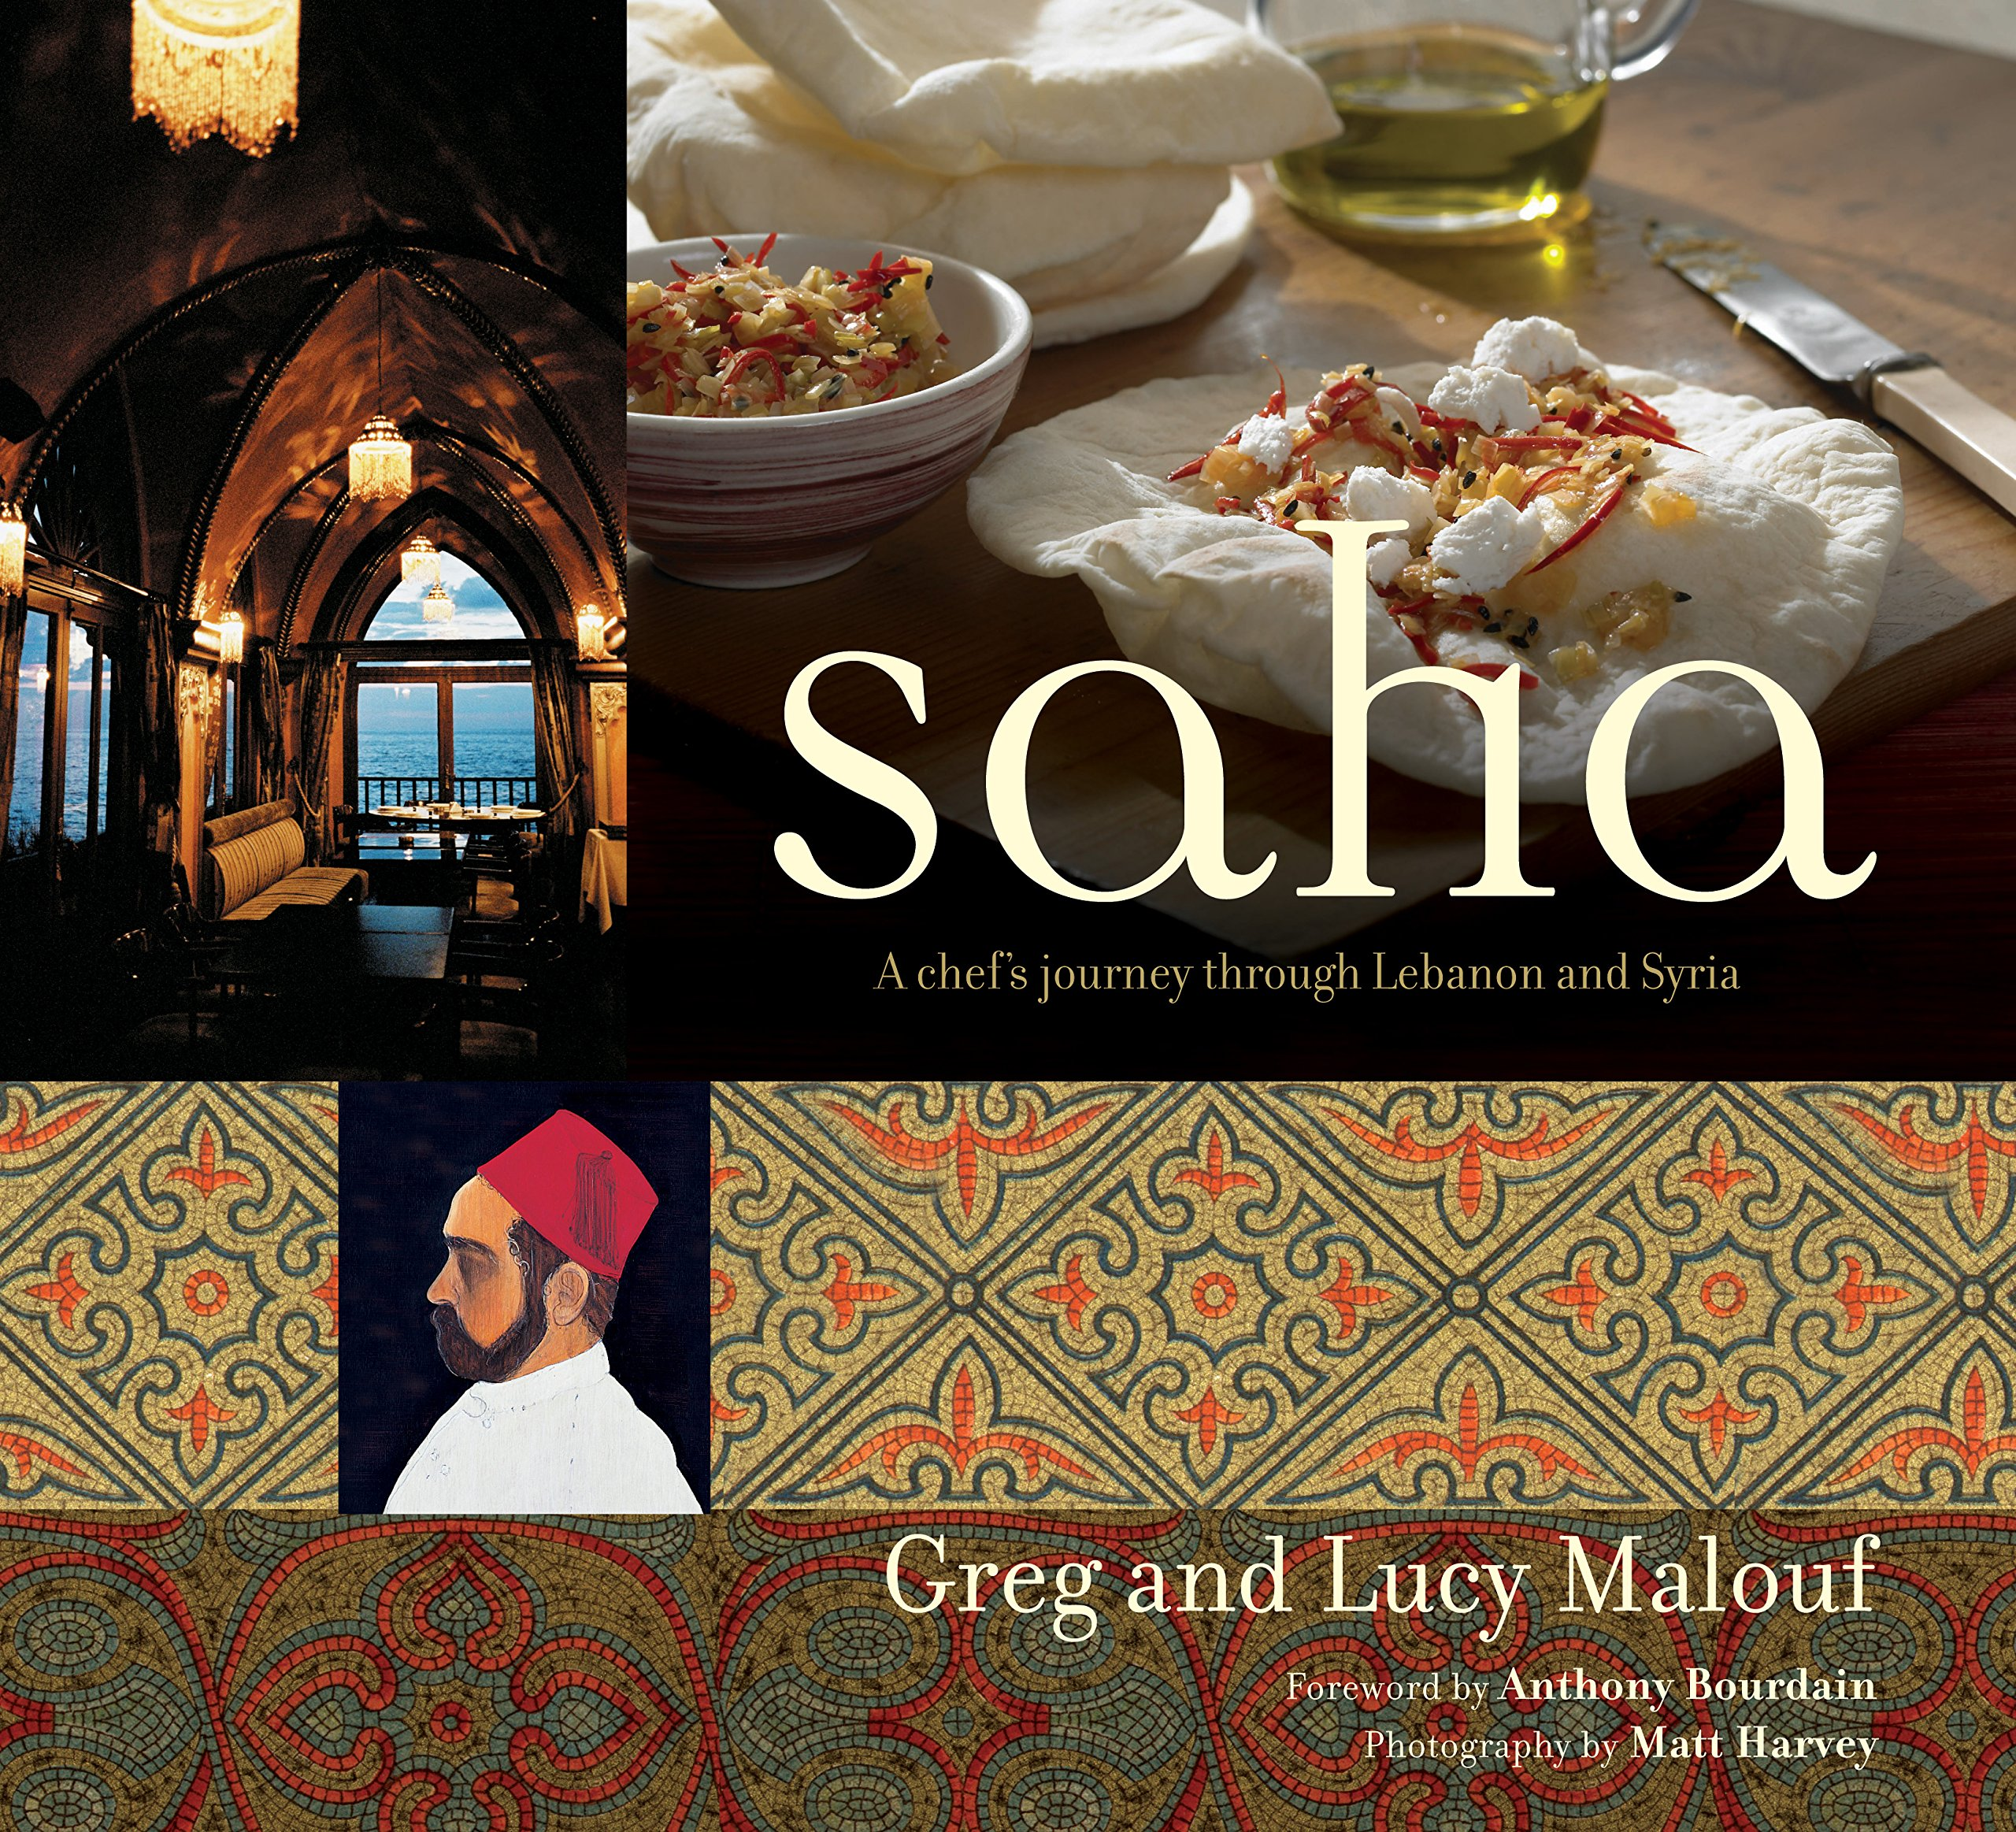 Saha: A Chef's Journey Through Lebanon and Syria [Middle Eastern Cookbook, 150 Recipes] by Periplus Editions (HK) ltd.